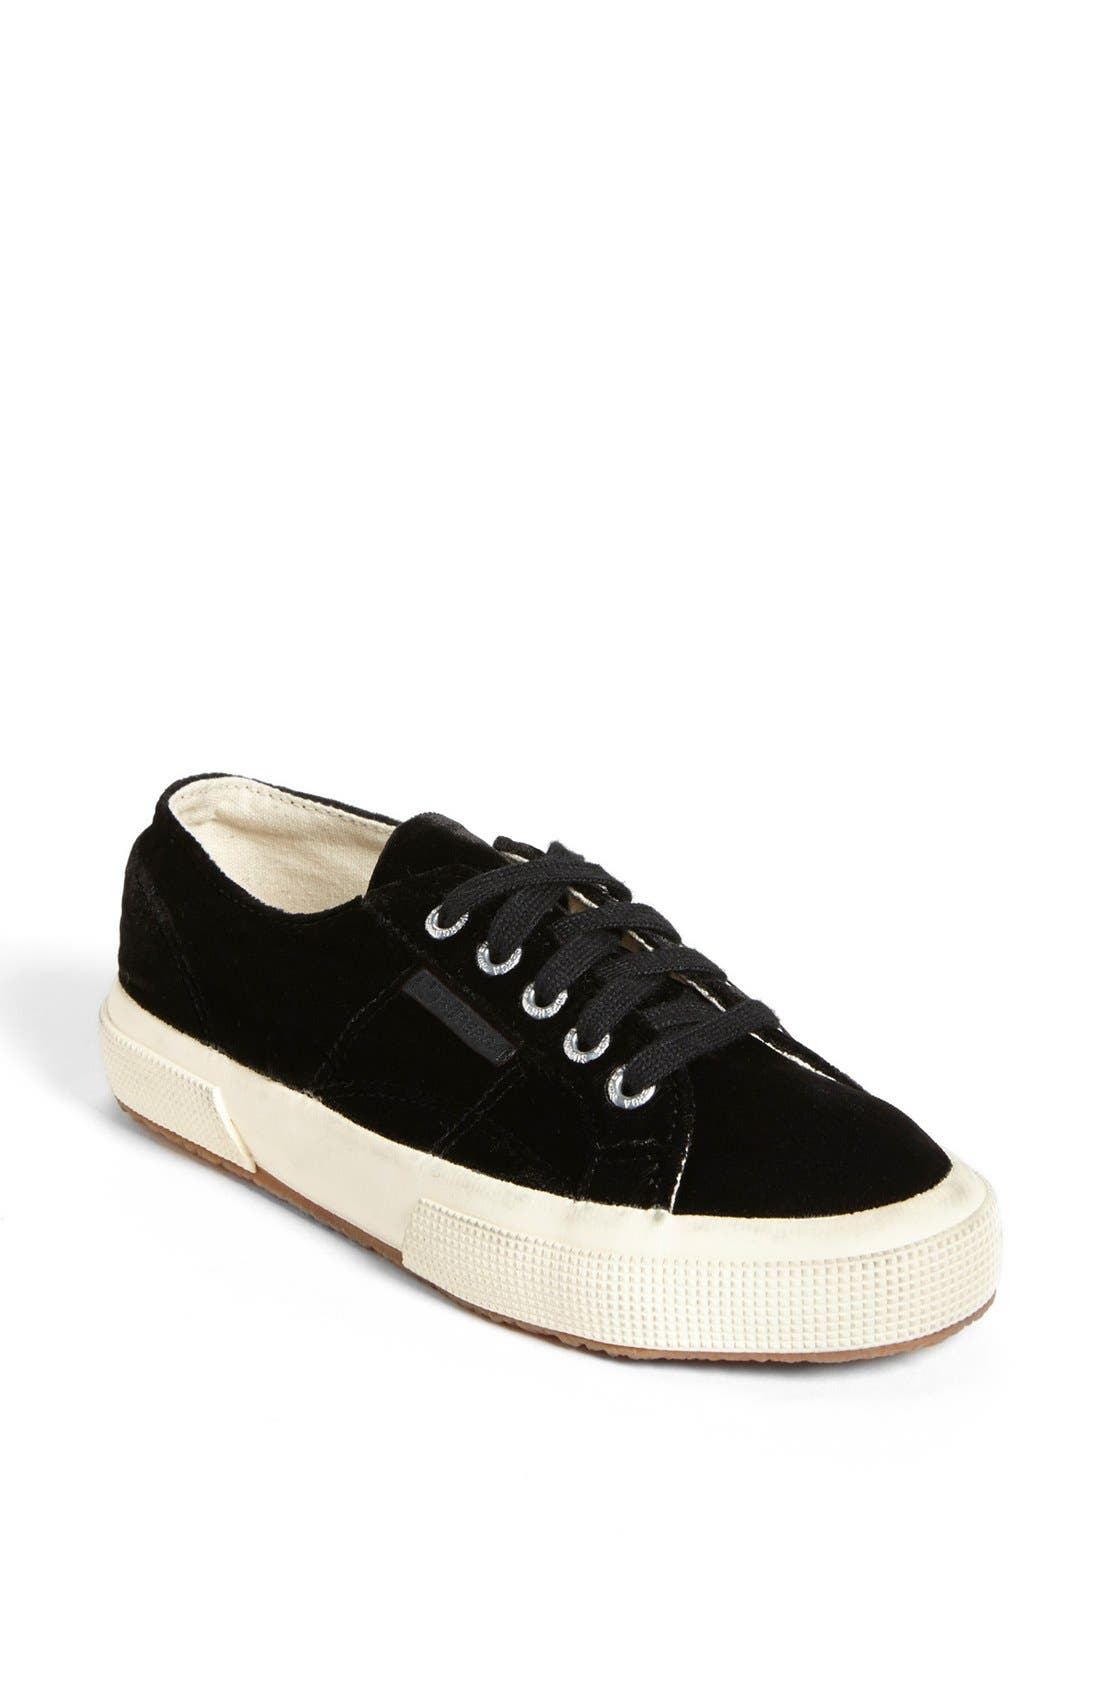 Main Image - Superga Velvet Sneaker (Women) (Limited Edition)